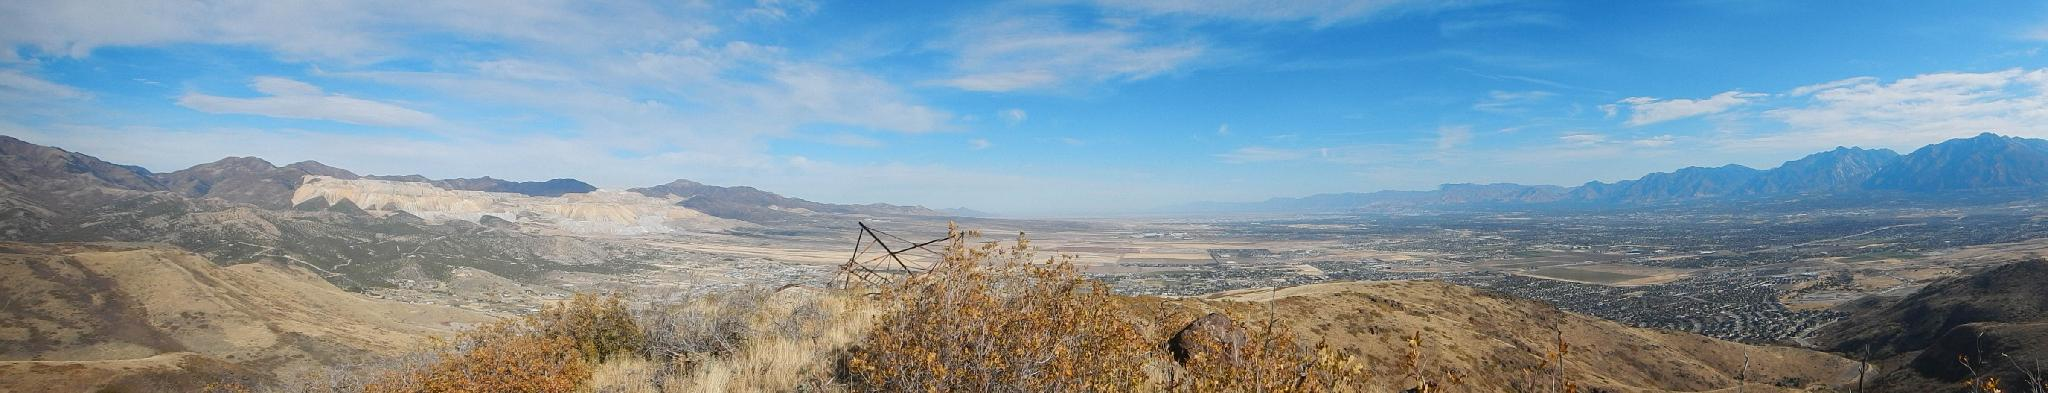 Panorama from South Mountain summit in the Traverse Mountains